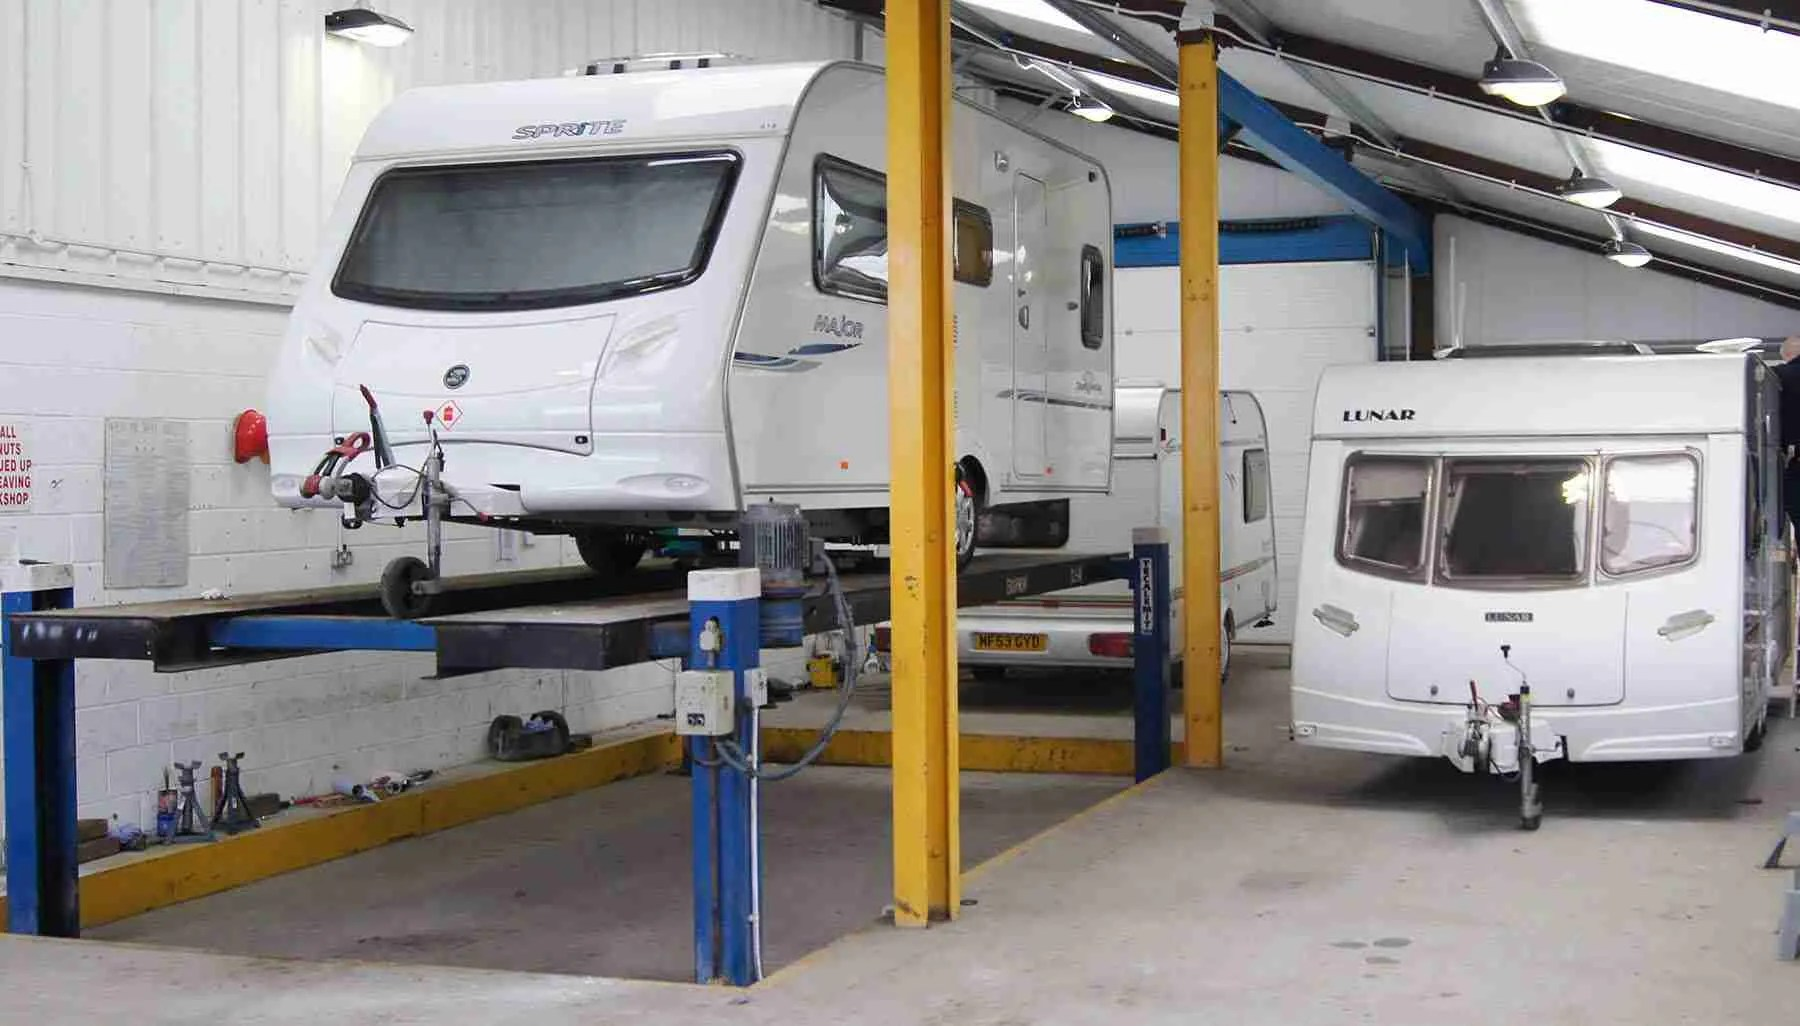 caravan_repair_workshop Blackpool